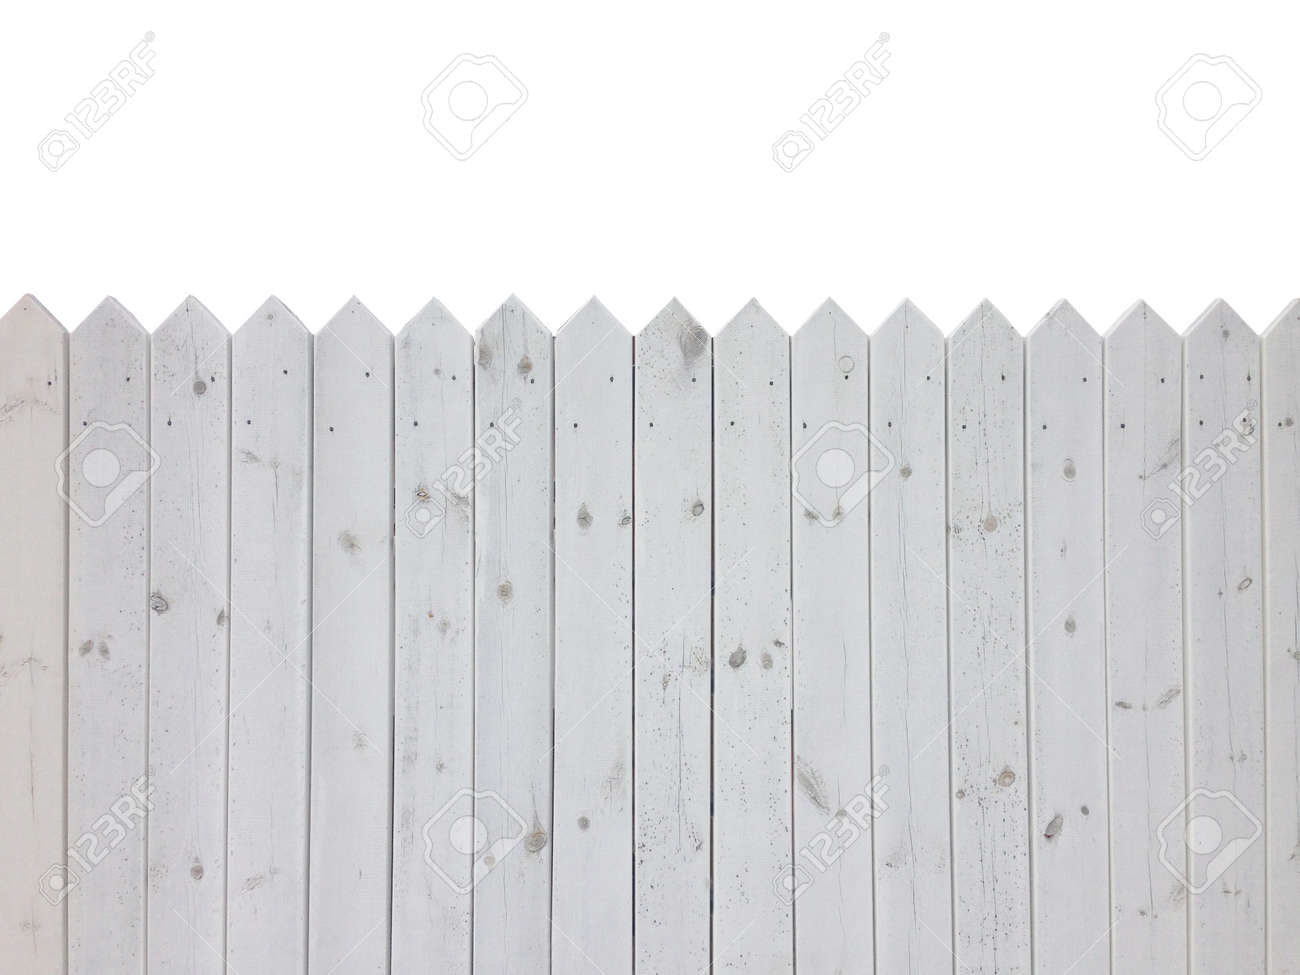 White wooden fence isolated on white background with copy space - 29014382